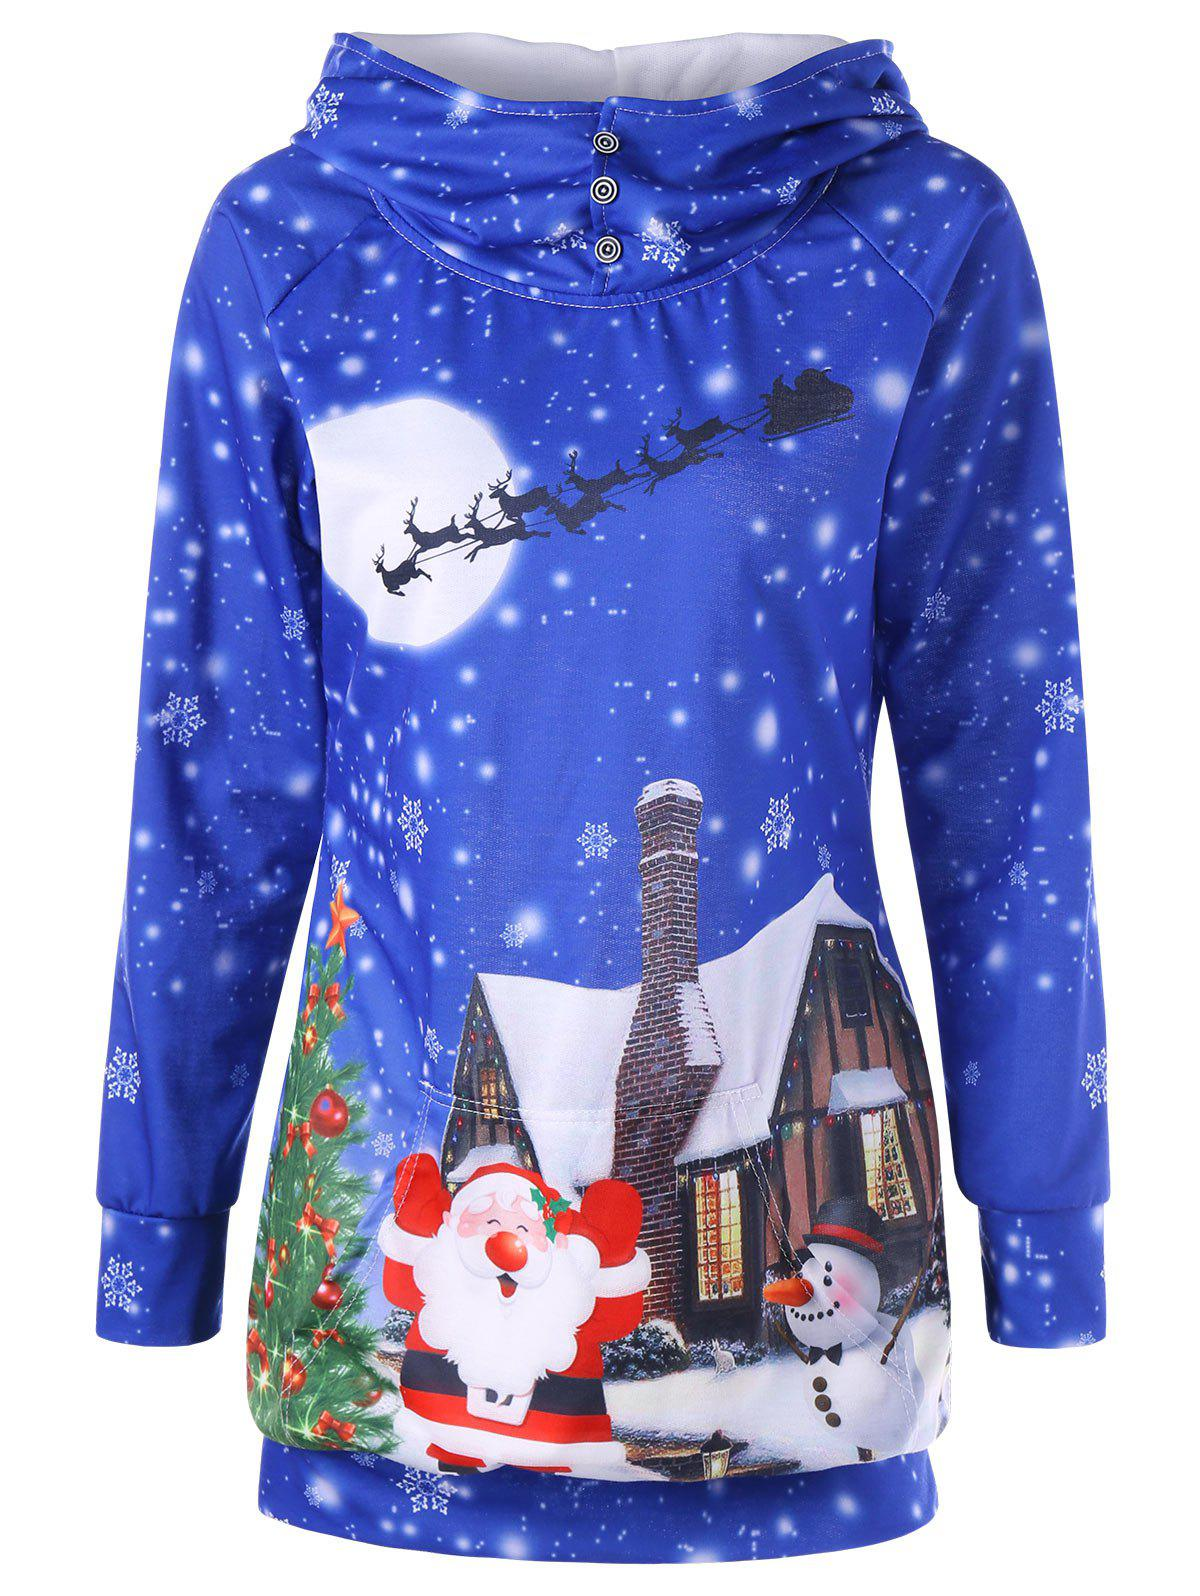 Santa Claus Snowflake Print Tunic Christmas HoodieWOMEN<br><br>Size: M; Color: BLUE; Material: Polyester; Shirt Length: Long; Sleeve Length: Full; Style: Fashion; Pattern Style: Print; Season: Fall,Spring; Weight: 0.4000kg; Package Contents: 1 x Hoodie;